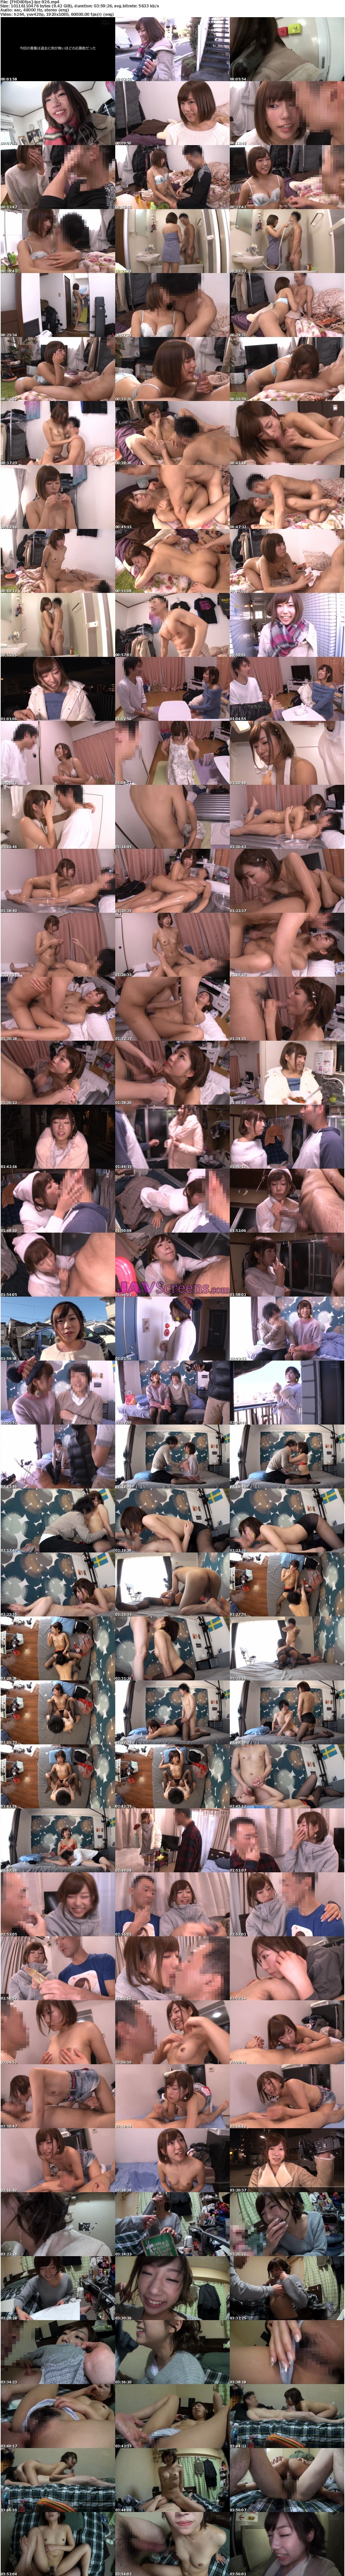 IPZ-926.jpg - JAV Screenshot